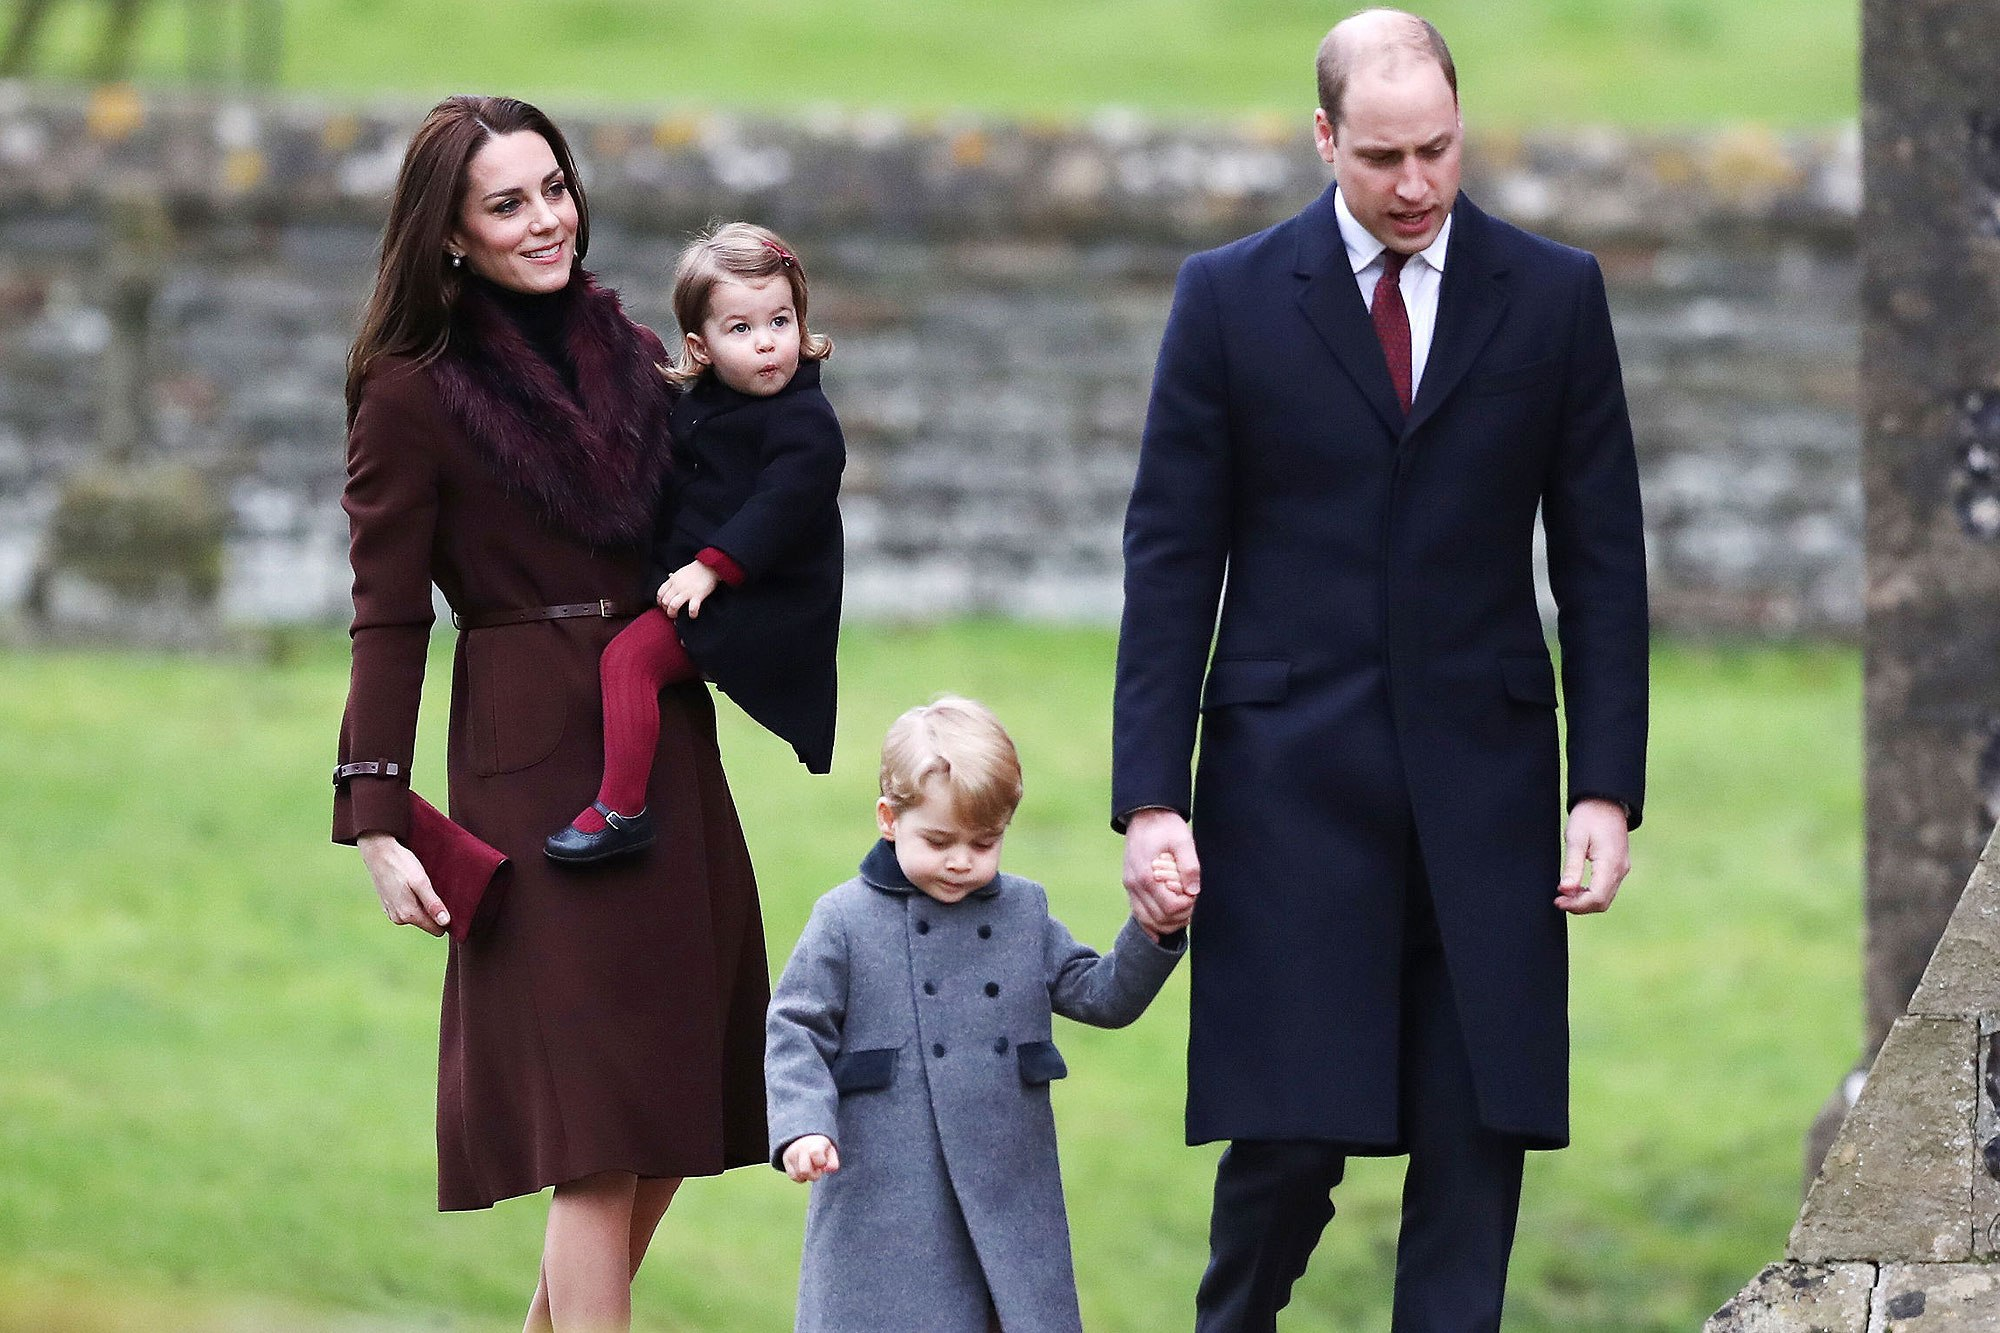 Kate Middleton cancels public appearance 'due to the children'